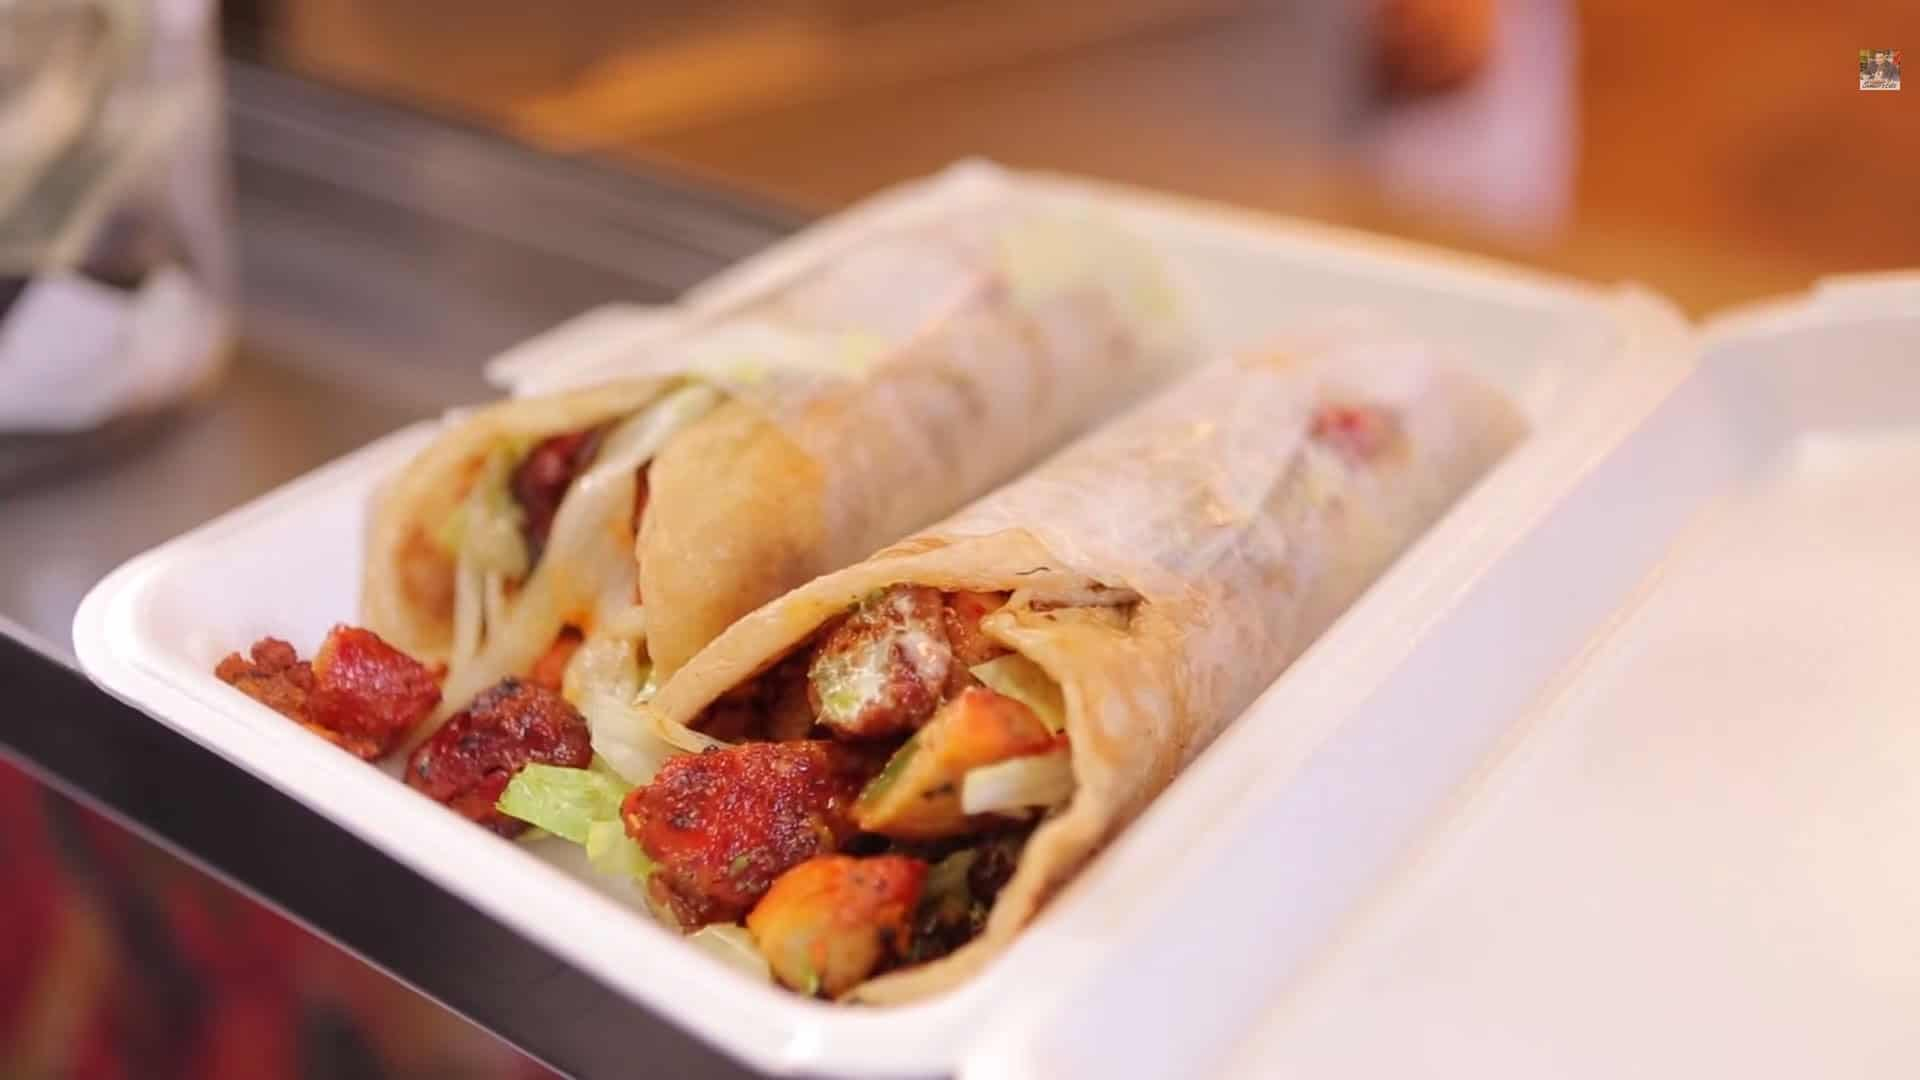 What A Kati Roll At Bhabi Halal Food New York Street Food